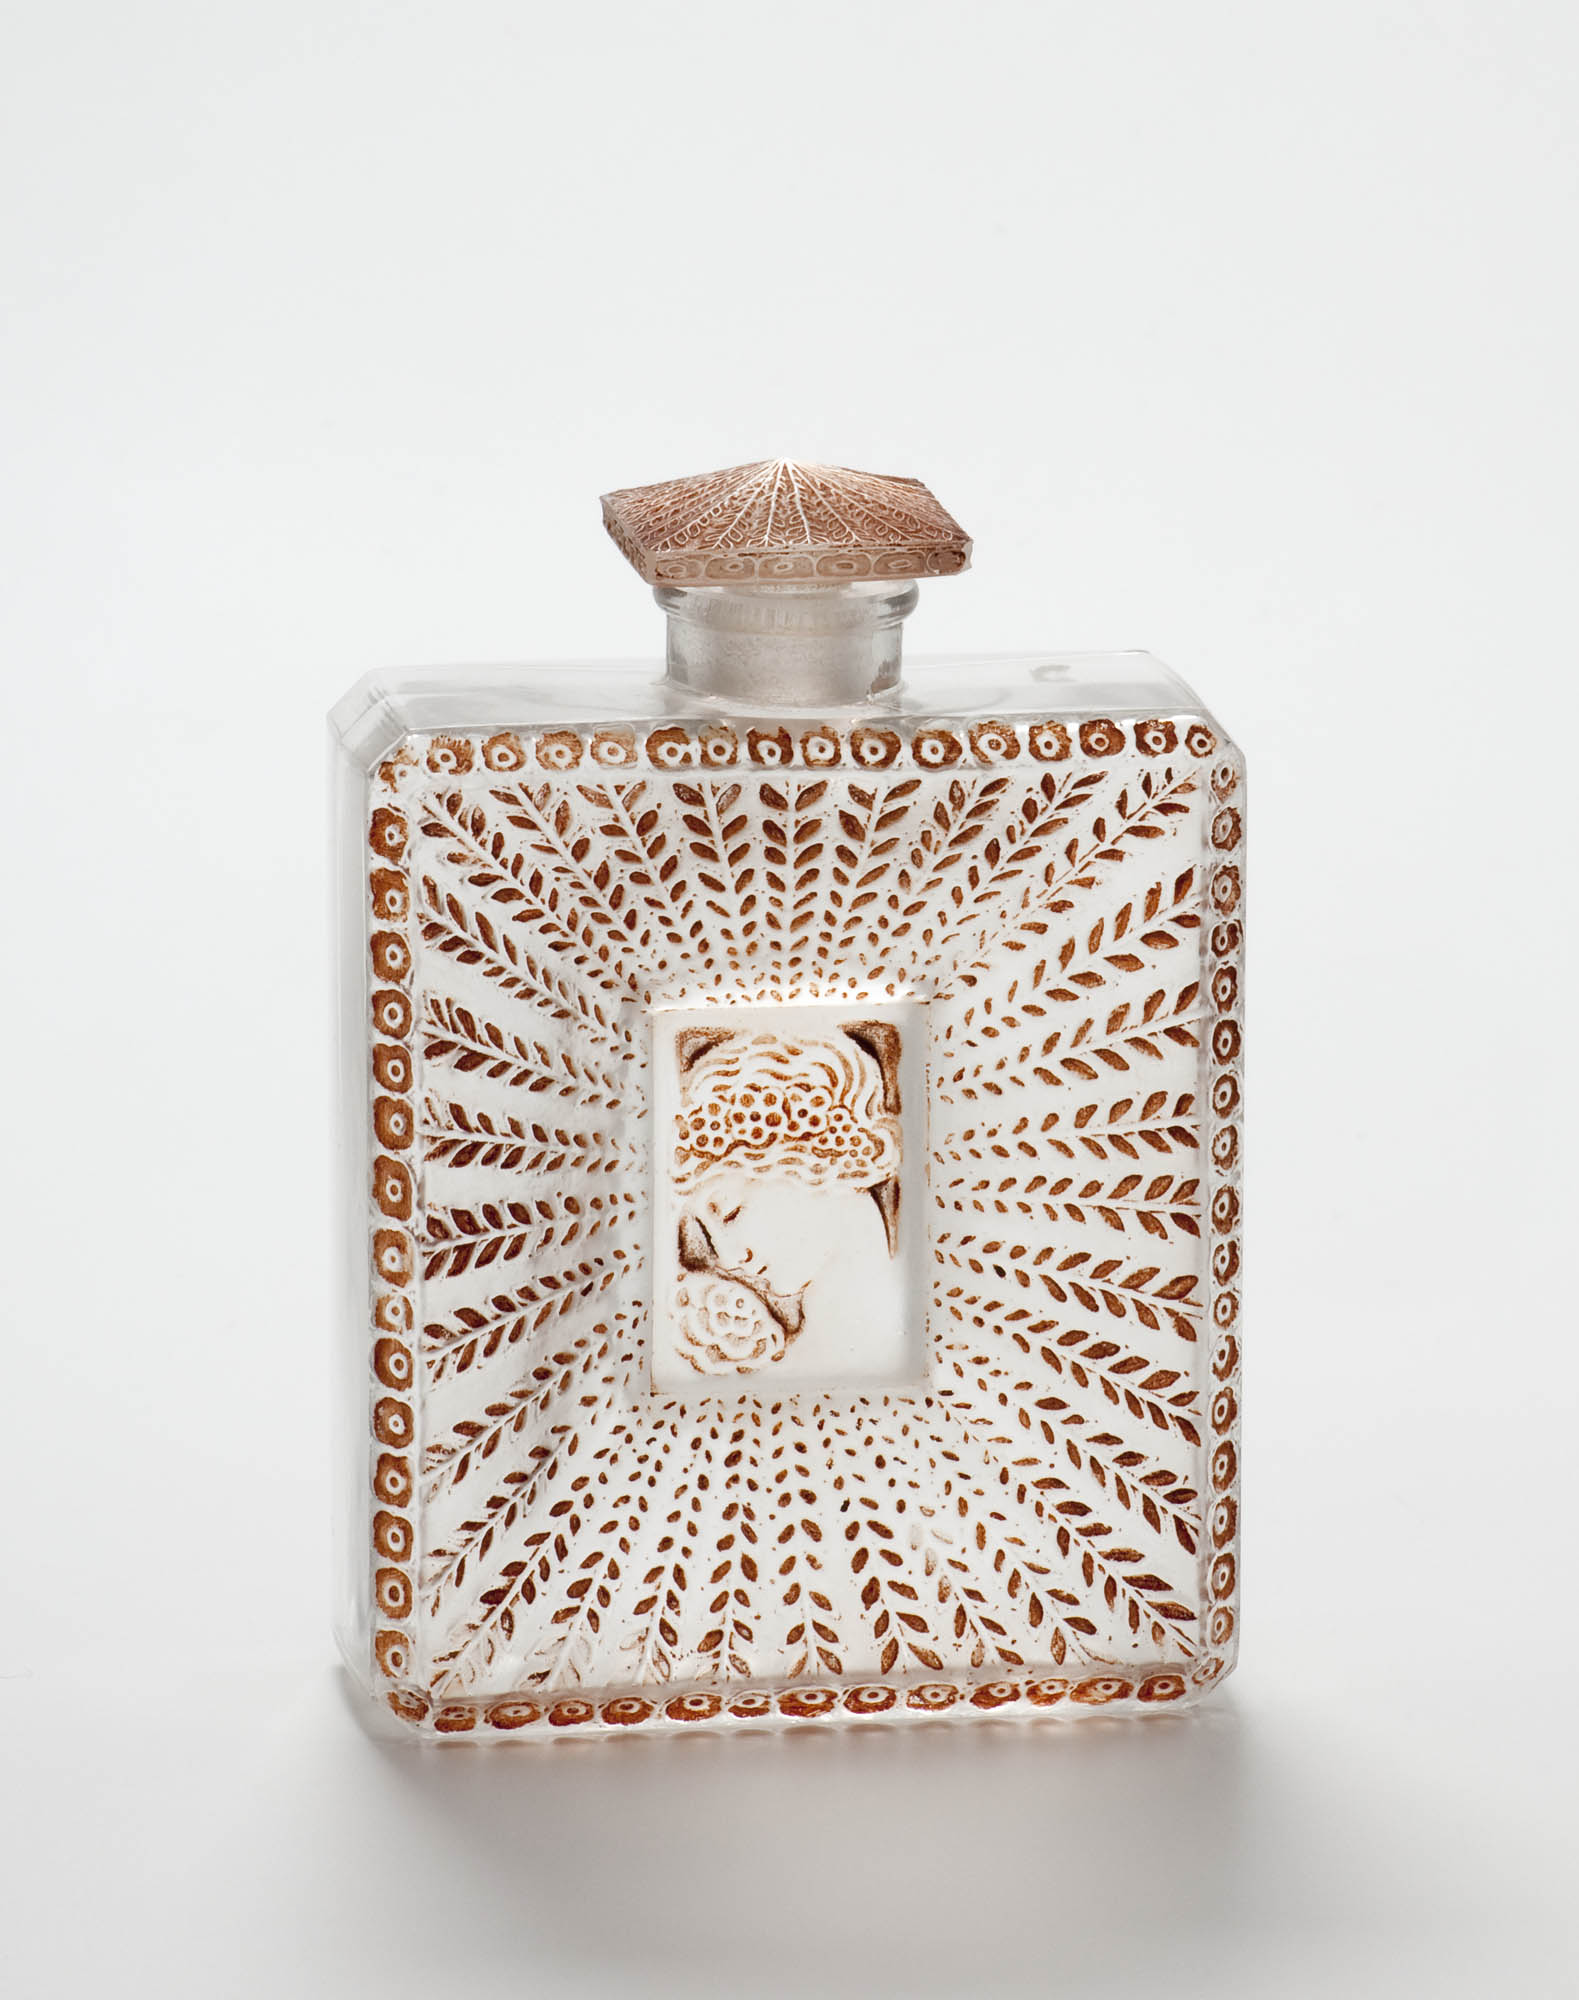 Modell Nr. 502: Serpent René Lalique Perfume bottle